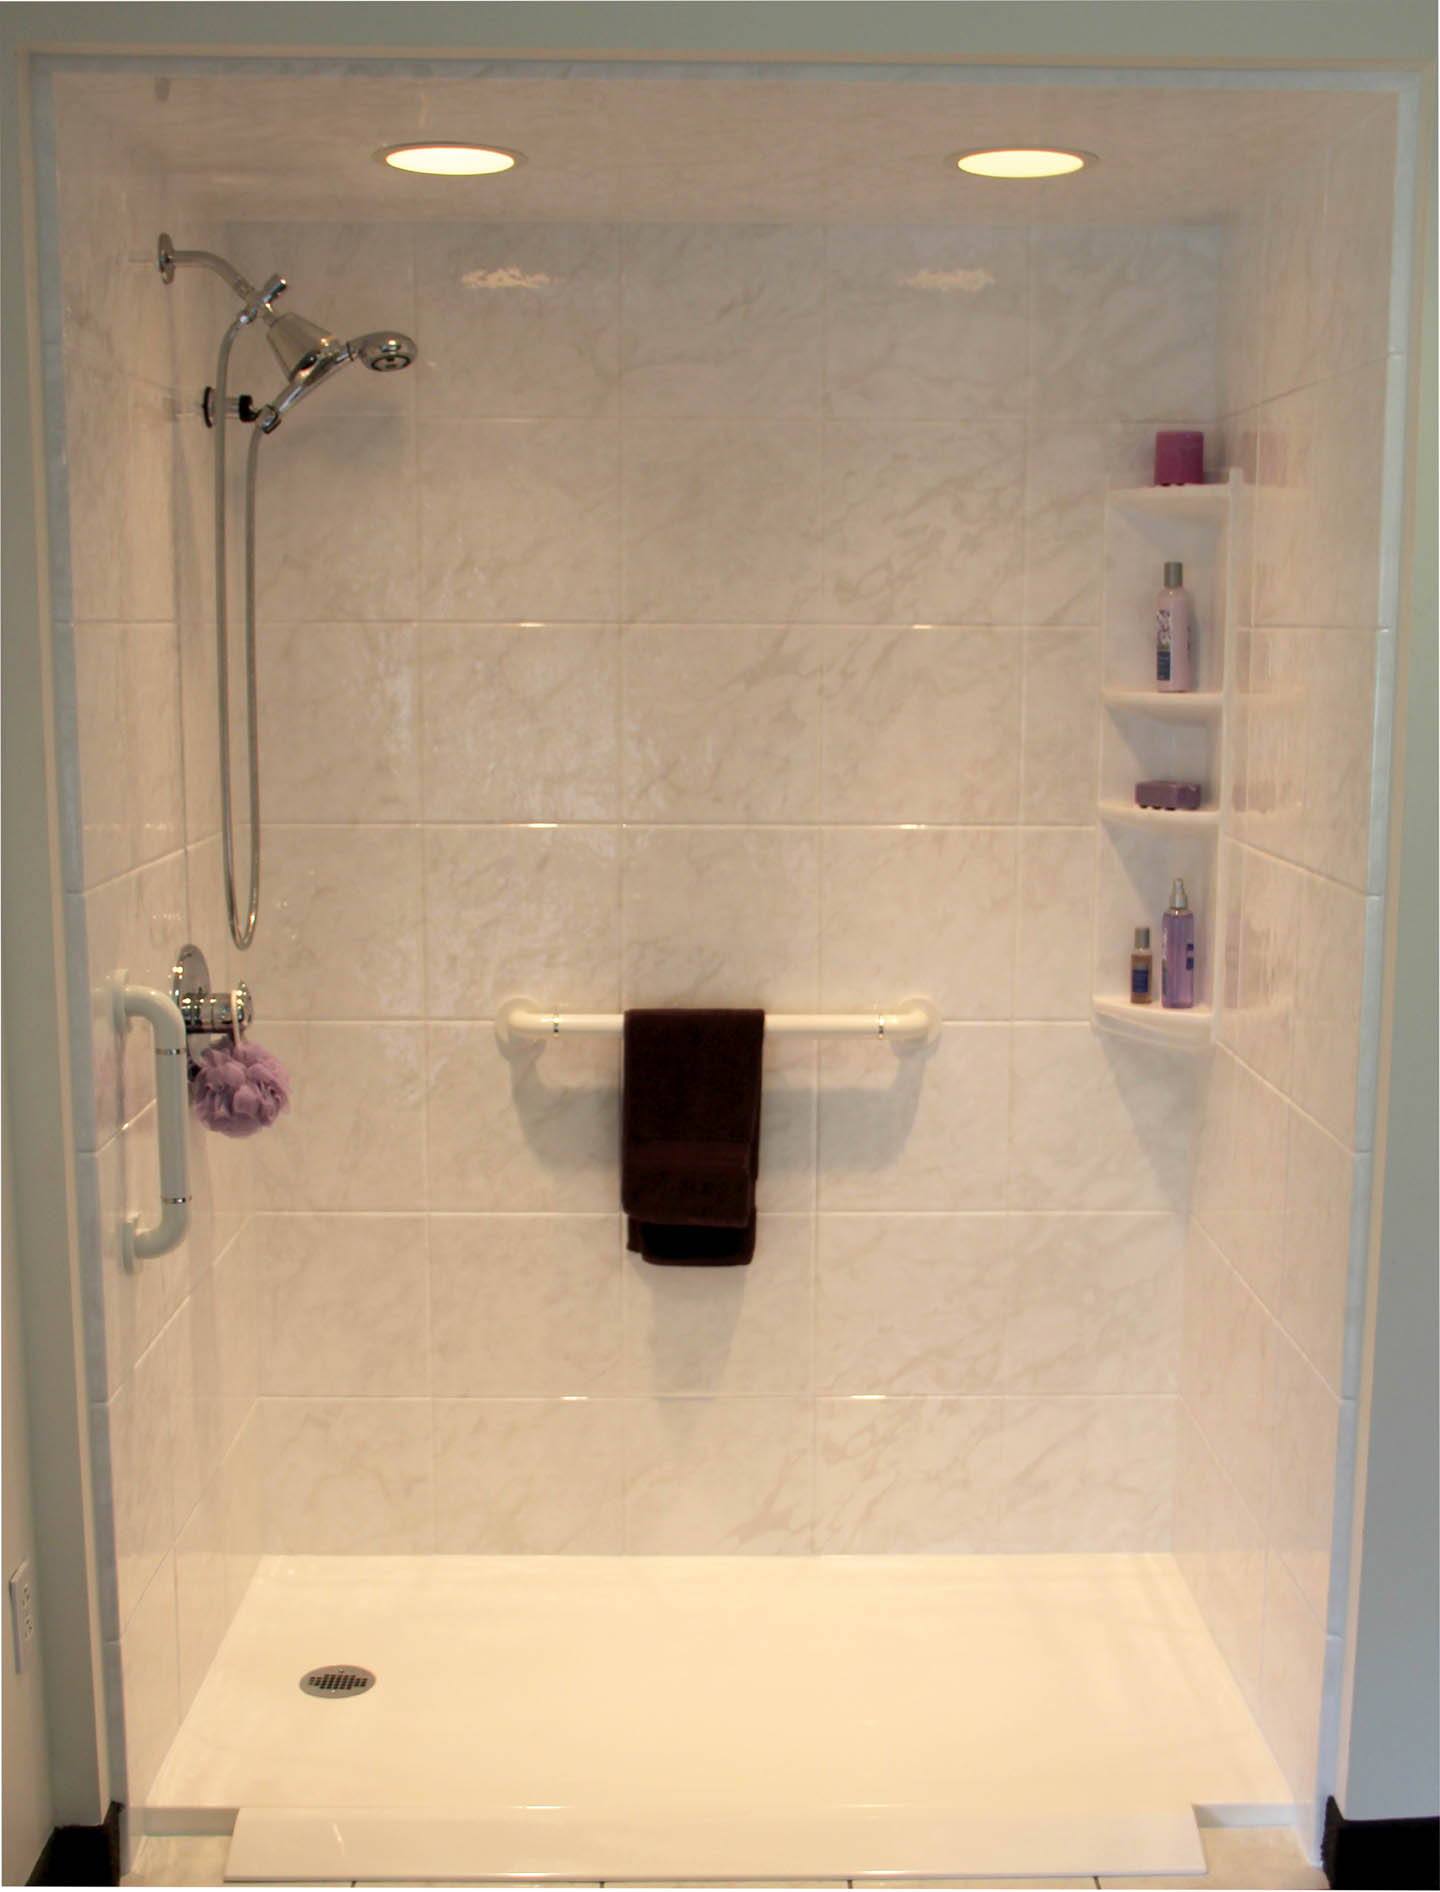 Rebath Northeast Offers Great Deal On Tub To Shower Conversions